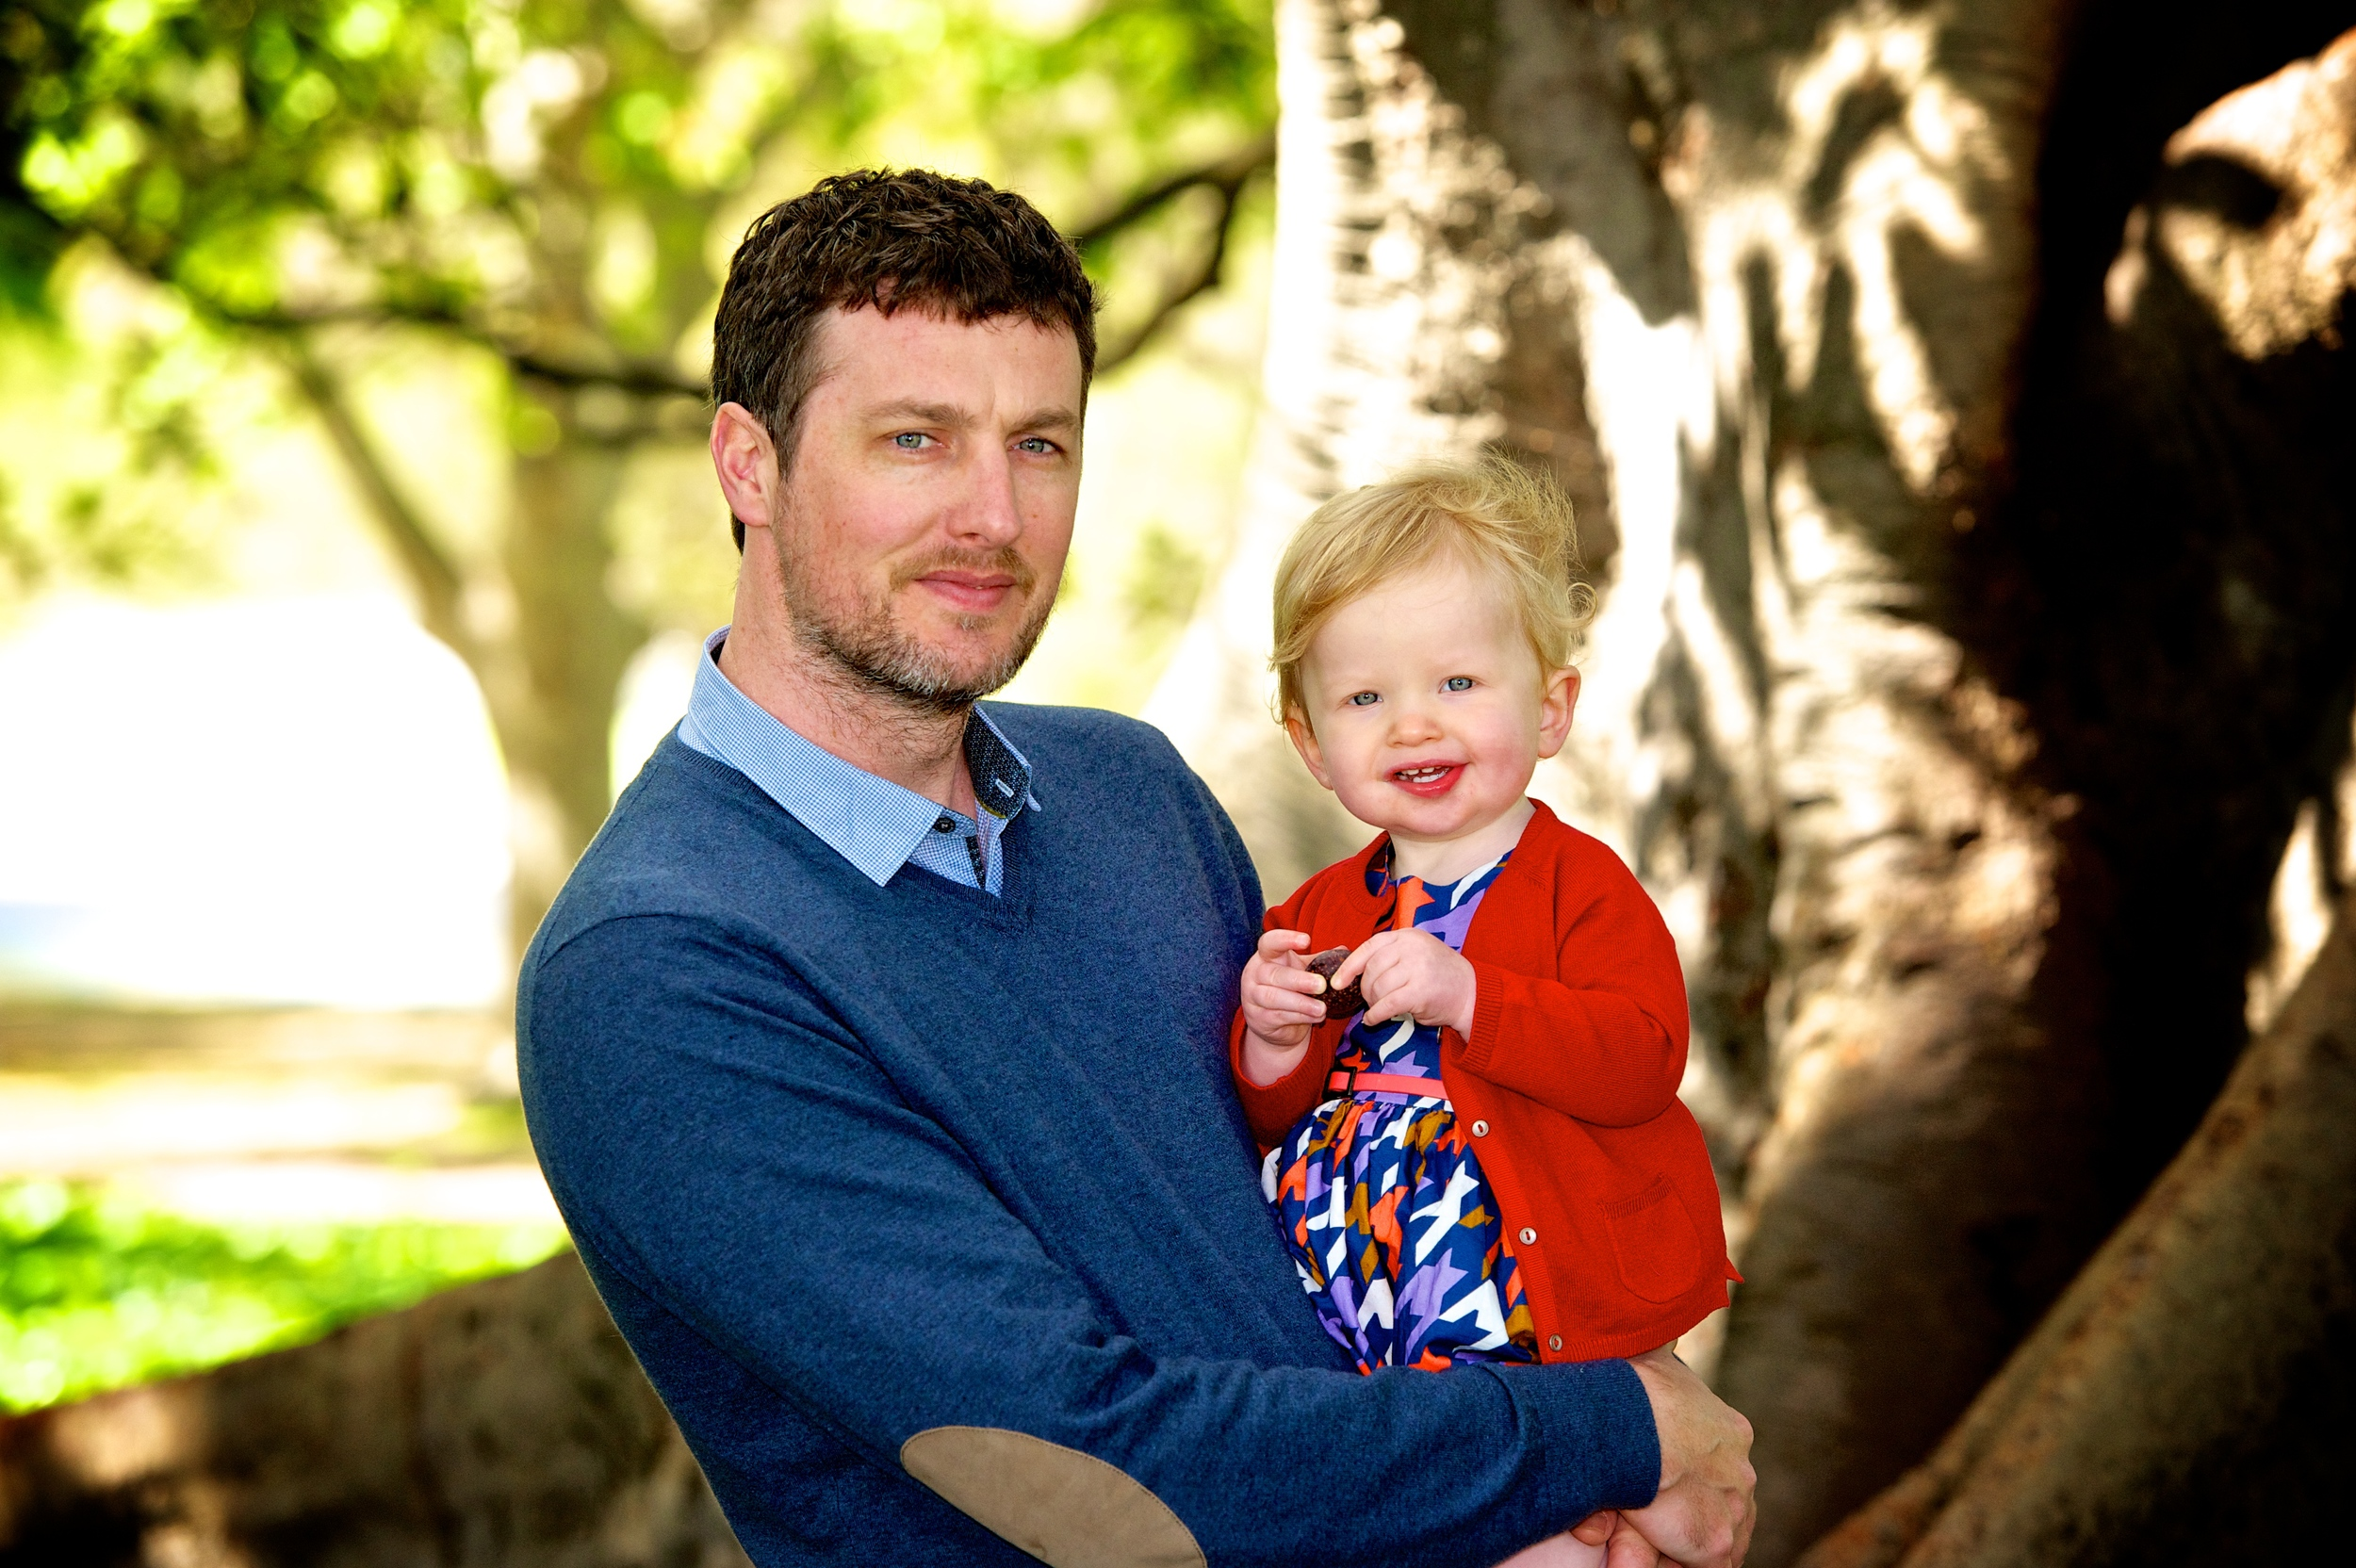 A Dad and his daughter enjoy Hyde park during a family photography session